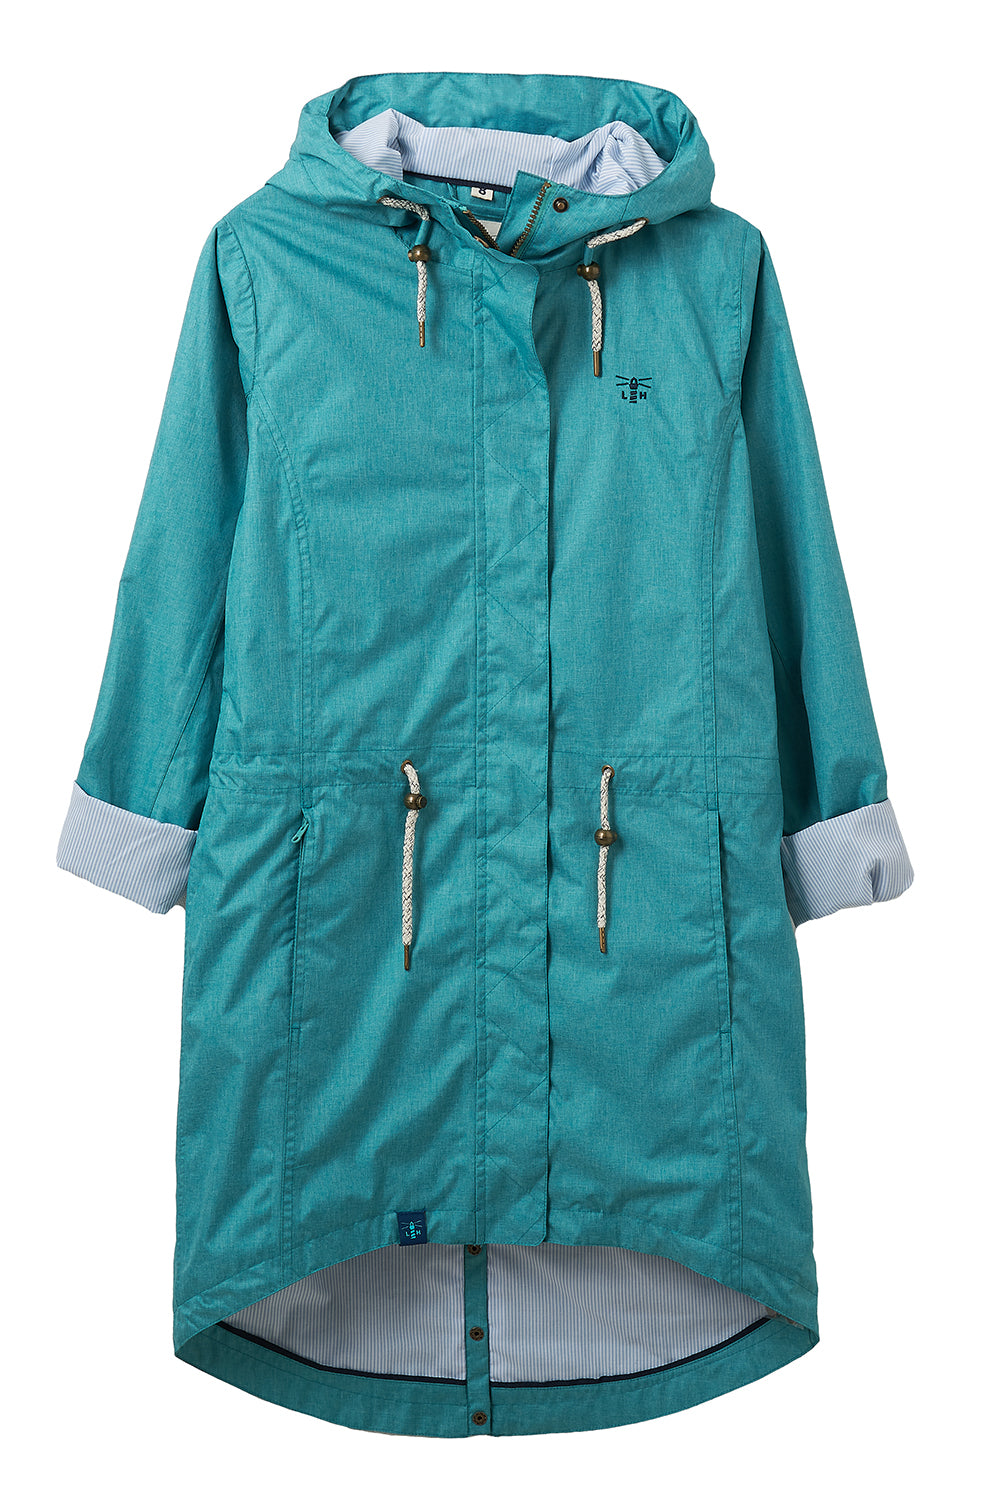 factory outlet cheap new style of 2019 Emily Womens Waterproof Jacket